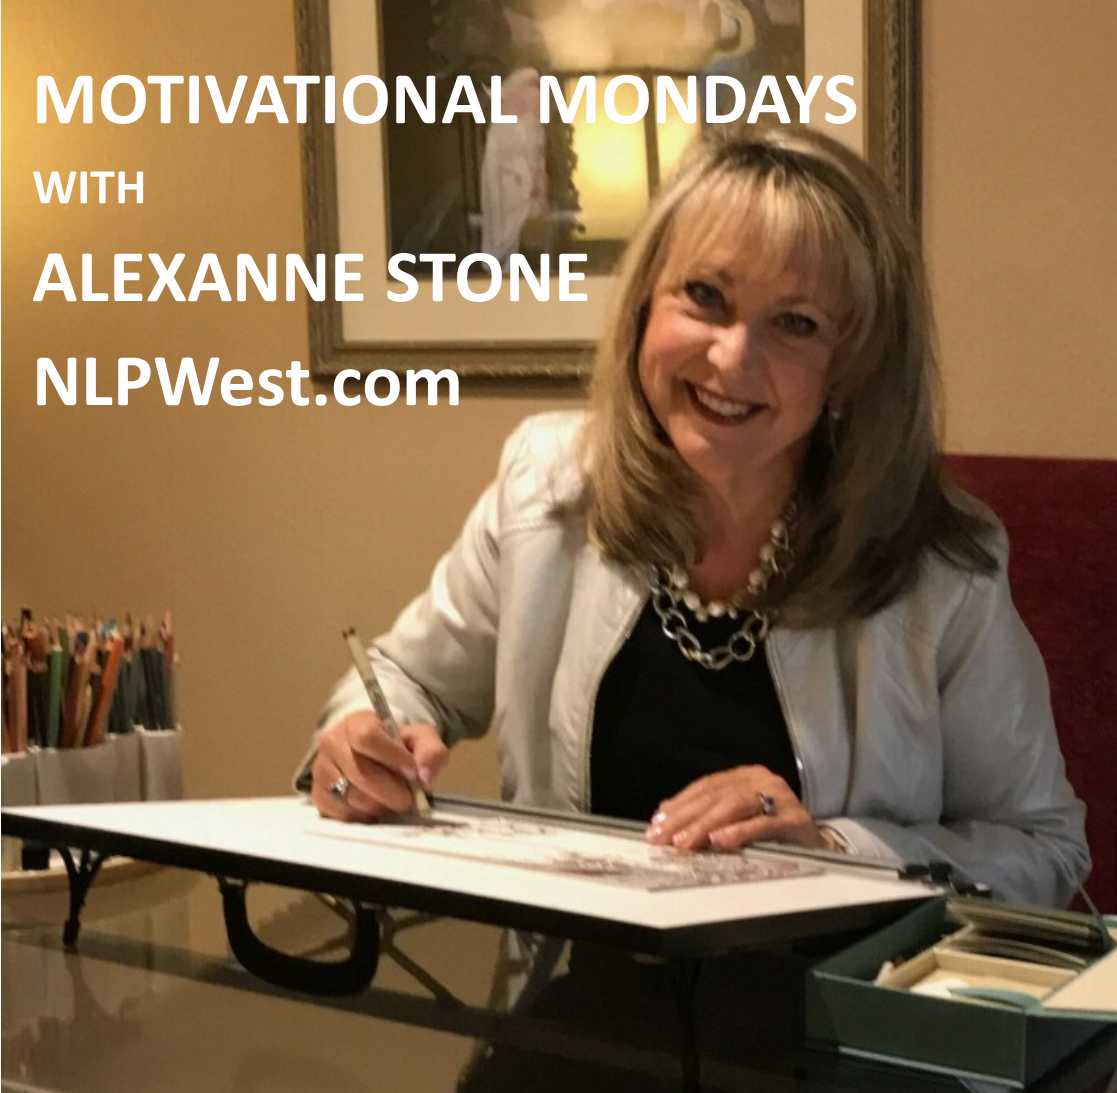 Motivational Monday with Alexanne Photo.pub